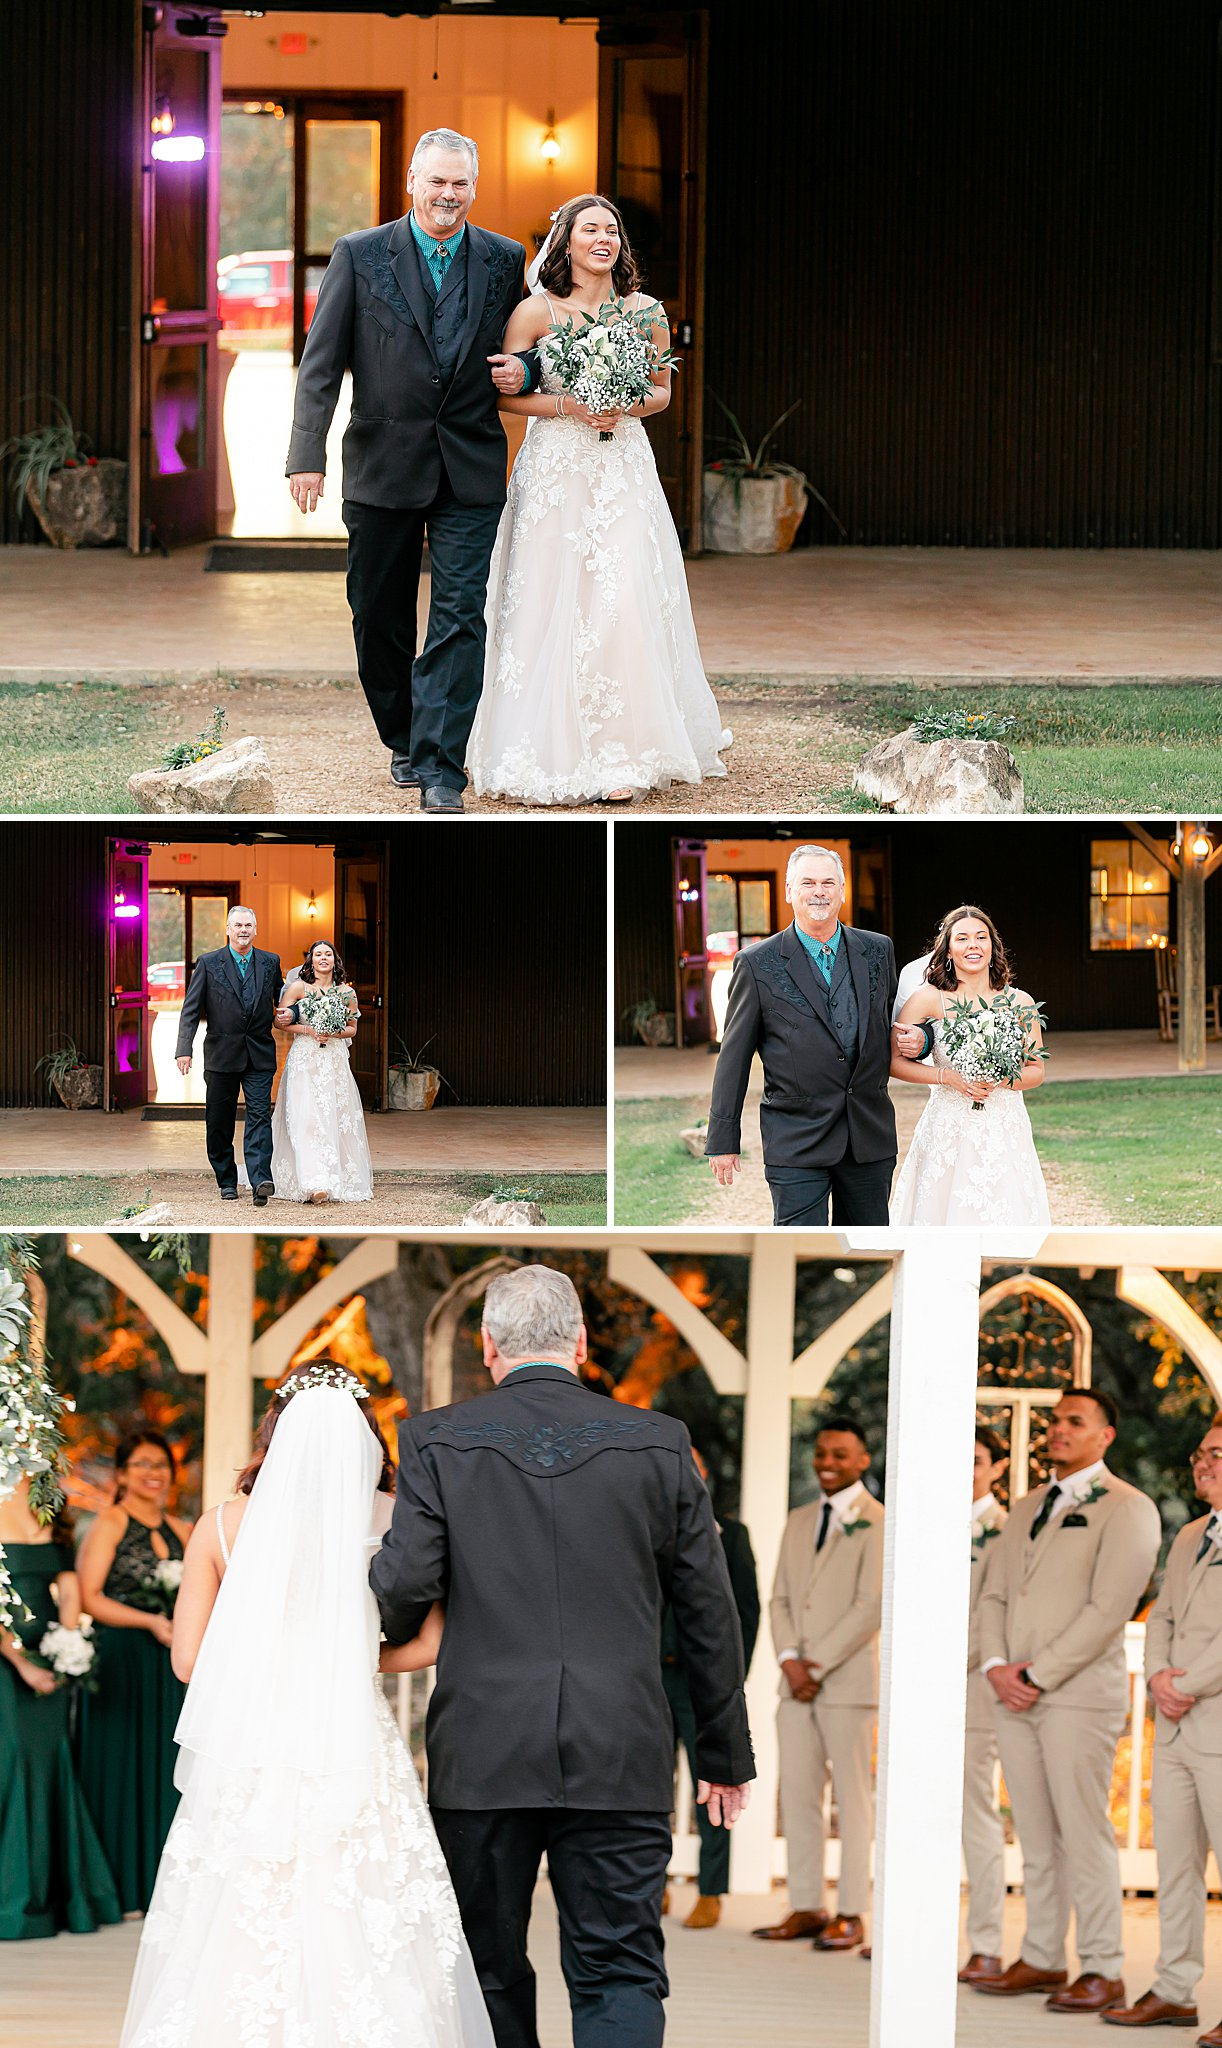 Carly-Barton-Photography-Texas-Wedding-Photographer-Western-Sky-Wedding-Event-Venue-Emerald-Green-Theme_0015.jpg